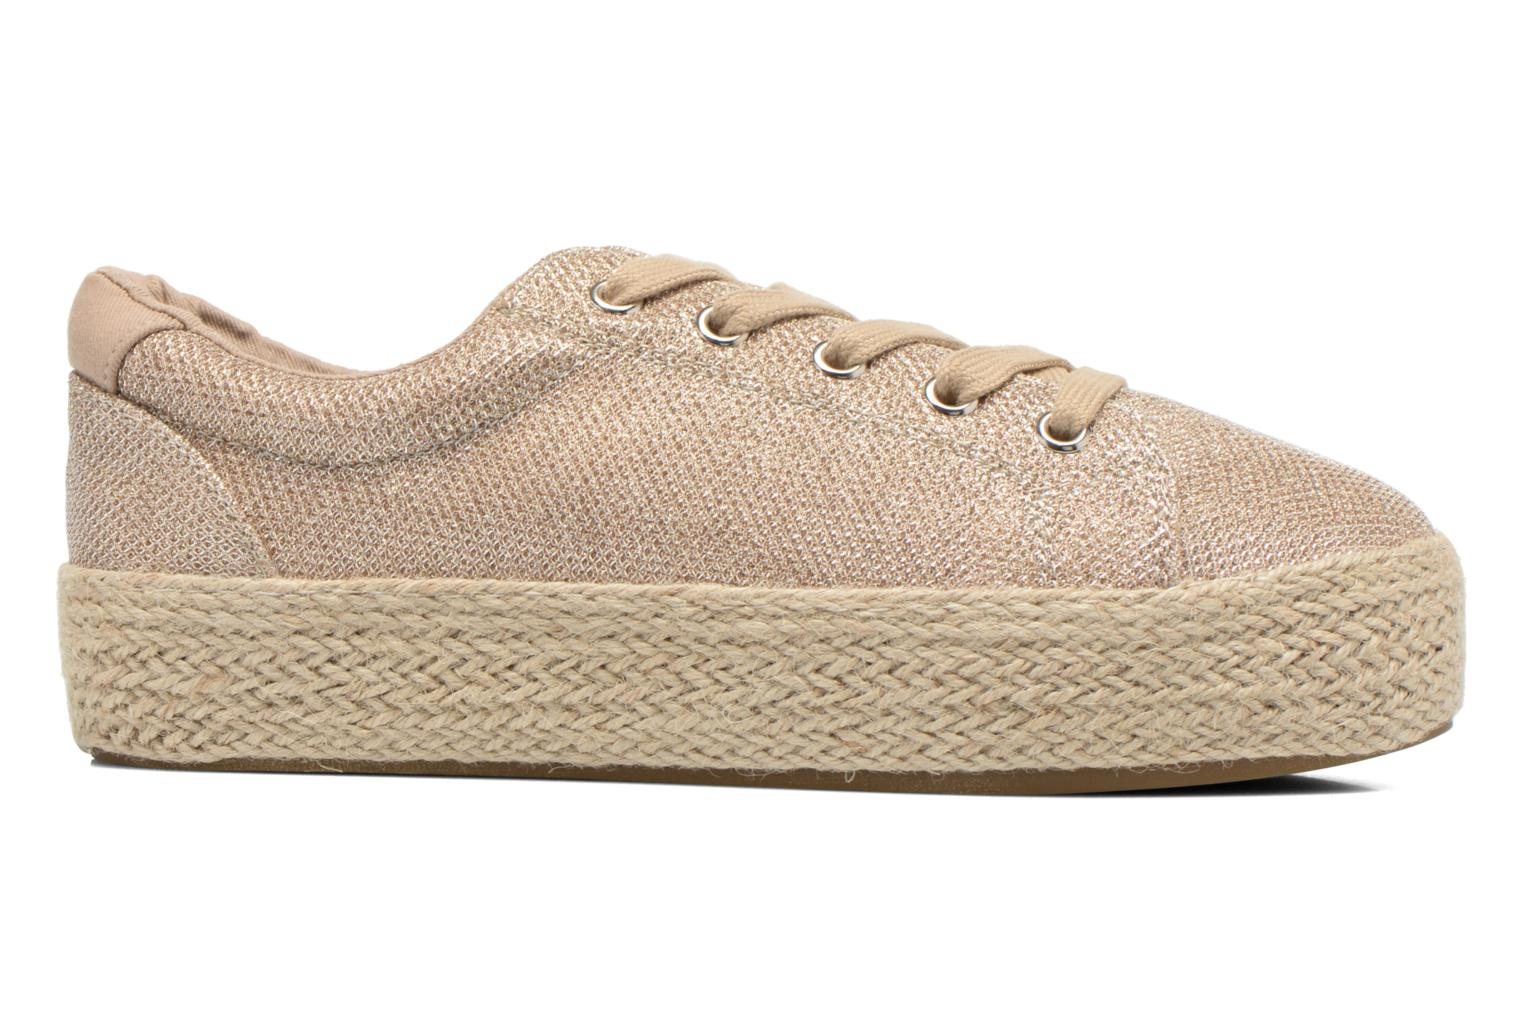 Mujer Steve Madden Staticc Deportivas Oro Y Bronce -